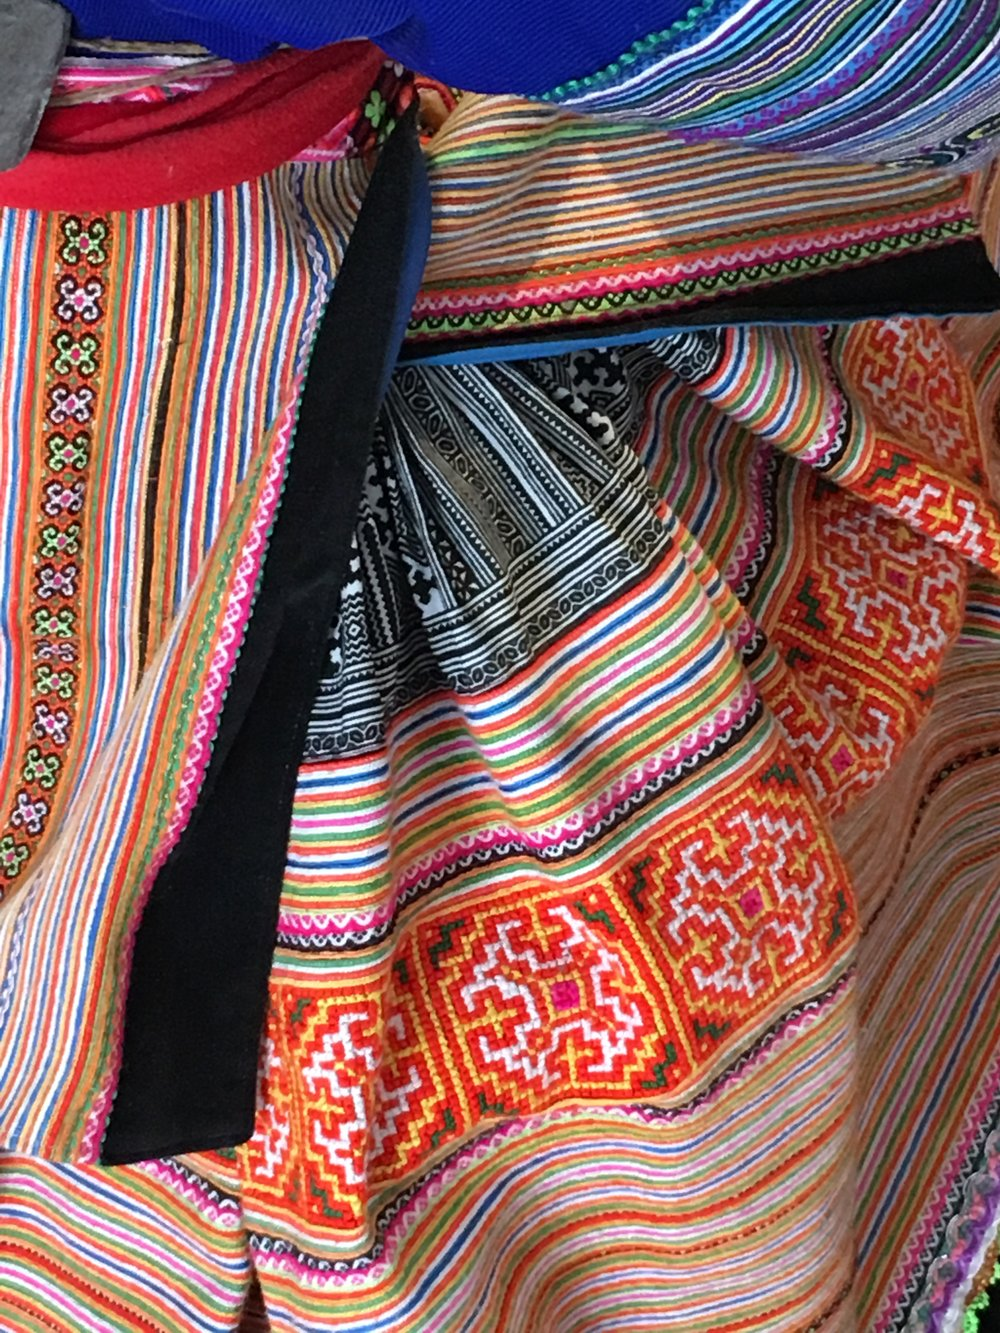 Examples of the patterns woven into the fabrics